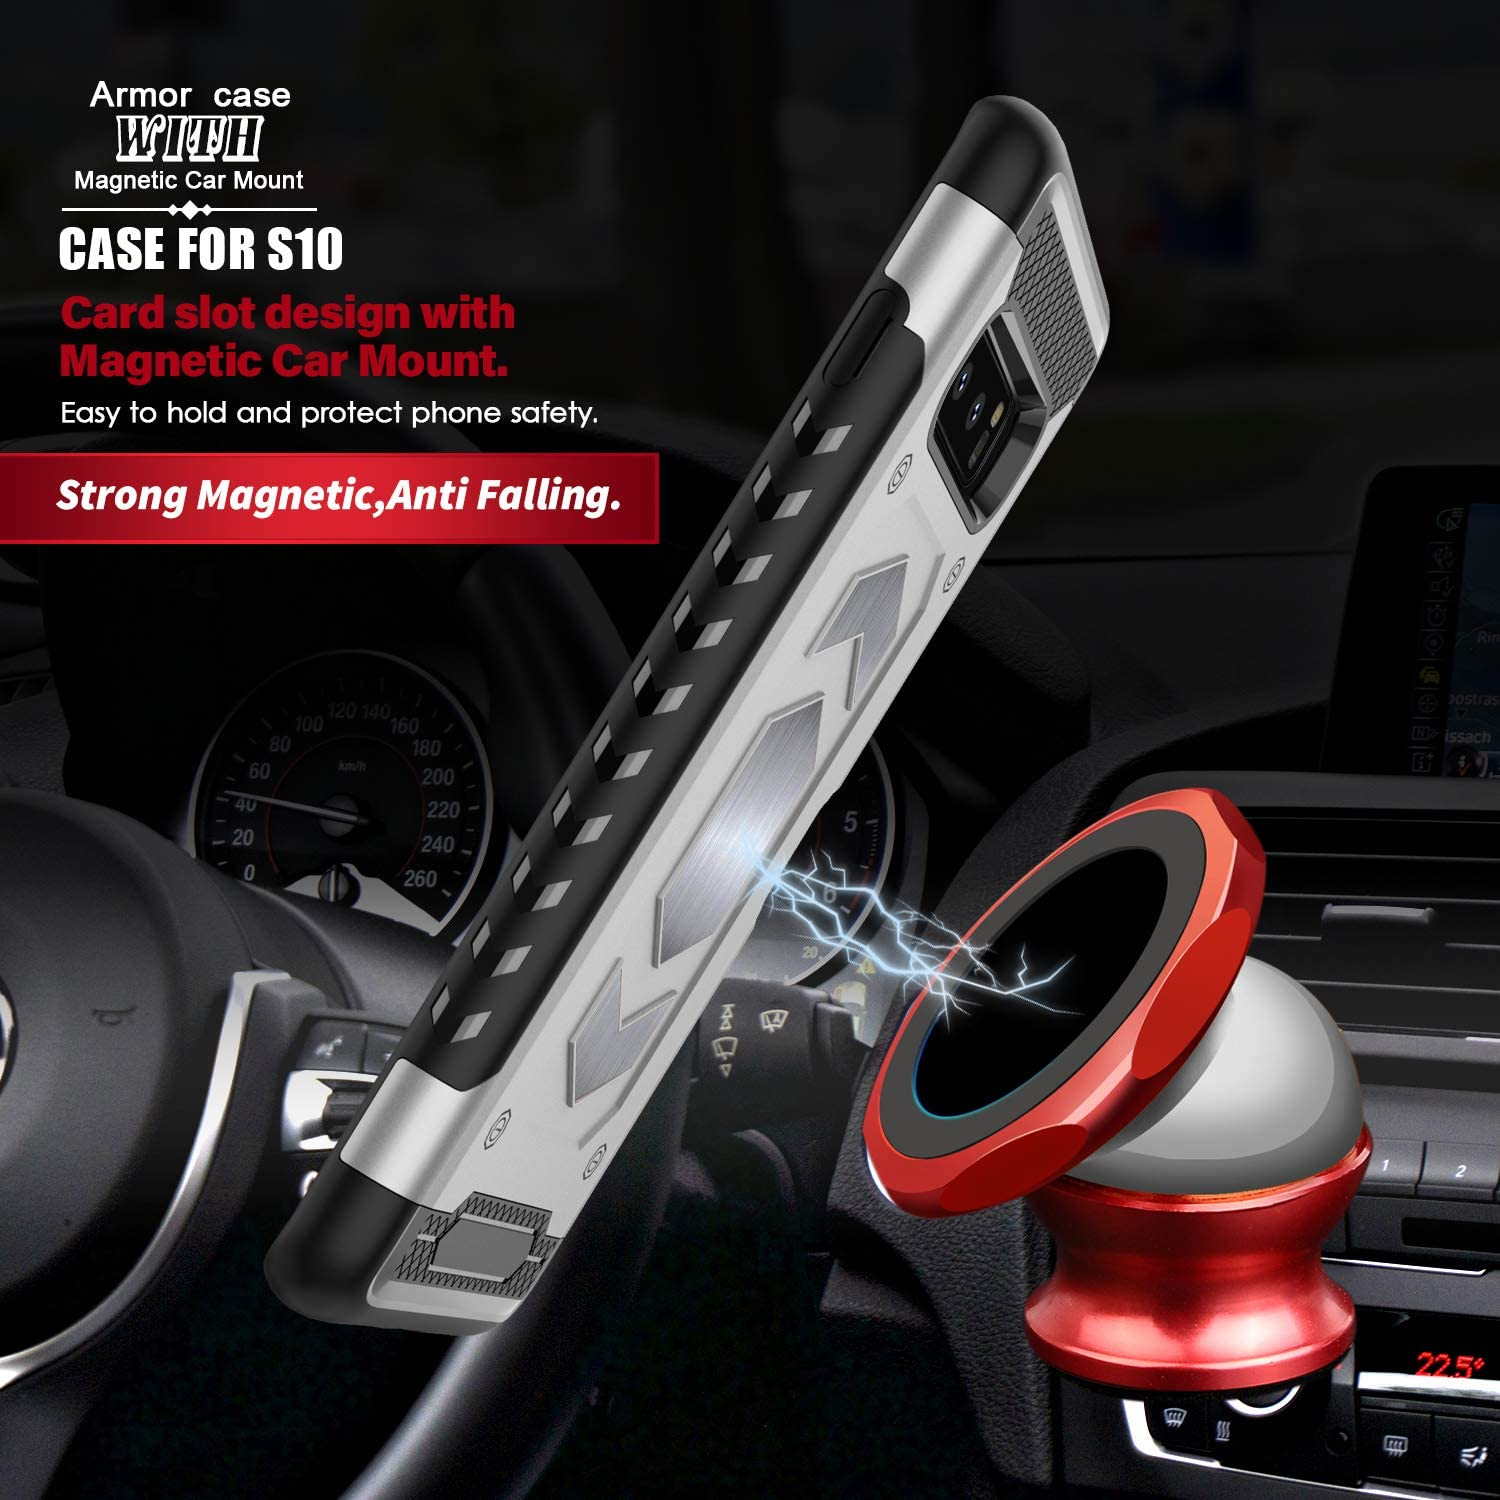 Samsung Galaxy S10e|S10|S10 Plus case Hard Shell with Card Holder Magnetic Car Mount Slim Heavy Duty Bumper Protective Cover